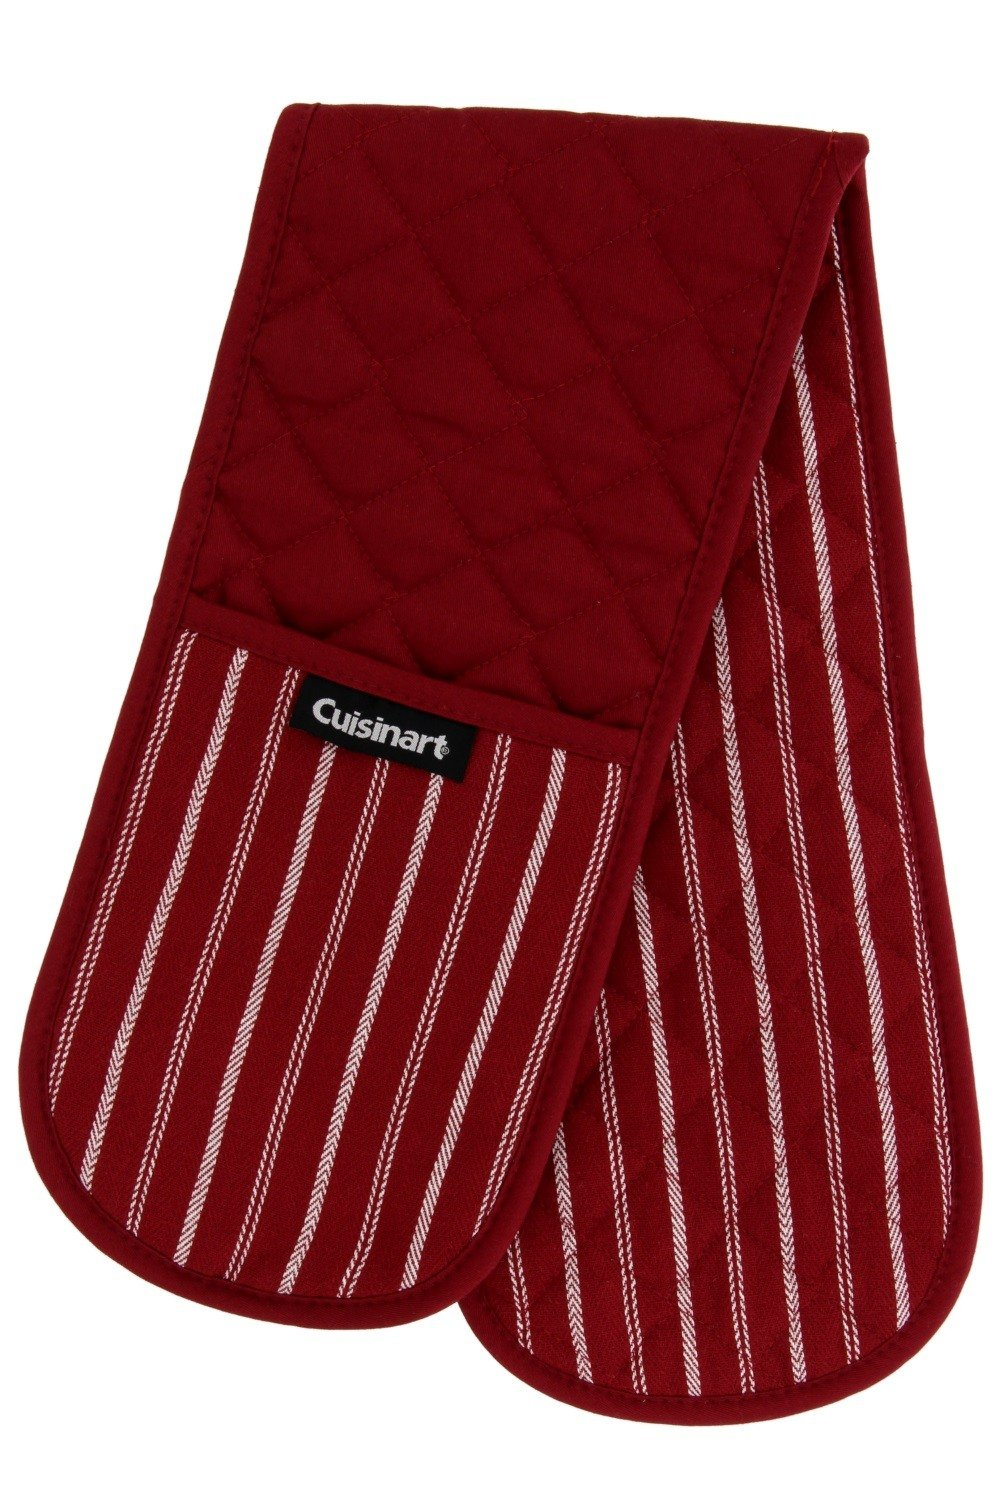 "Cuisinart Double Oven Mitt Glove/Moppine, Quilted Heat Resistant Kitchen Accessory, Twill Stripe, 35"" x 7.5"", Great for Cooking, Baking, and Handling Hot Pots & Pans- Red Dahlia"